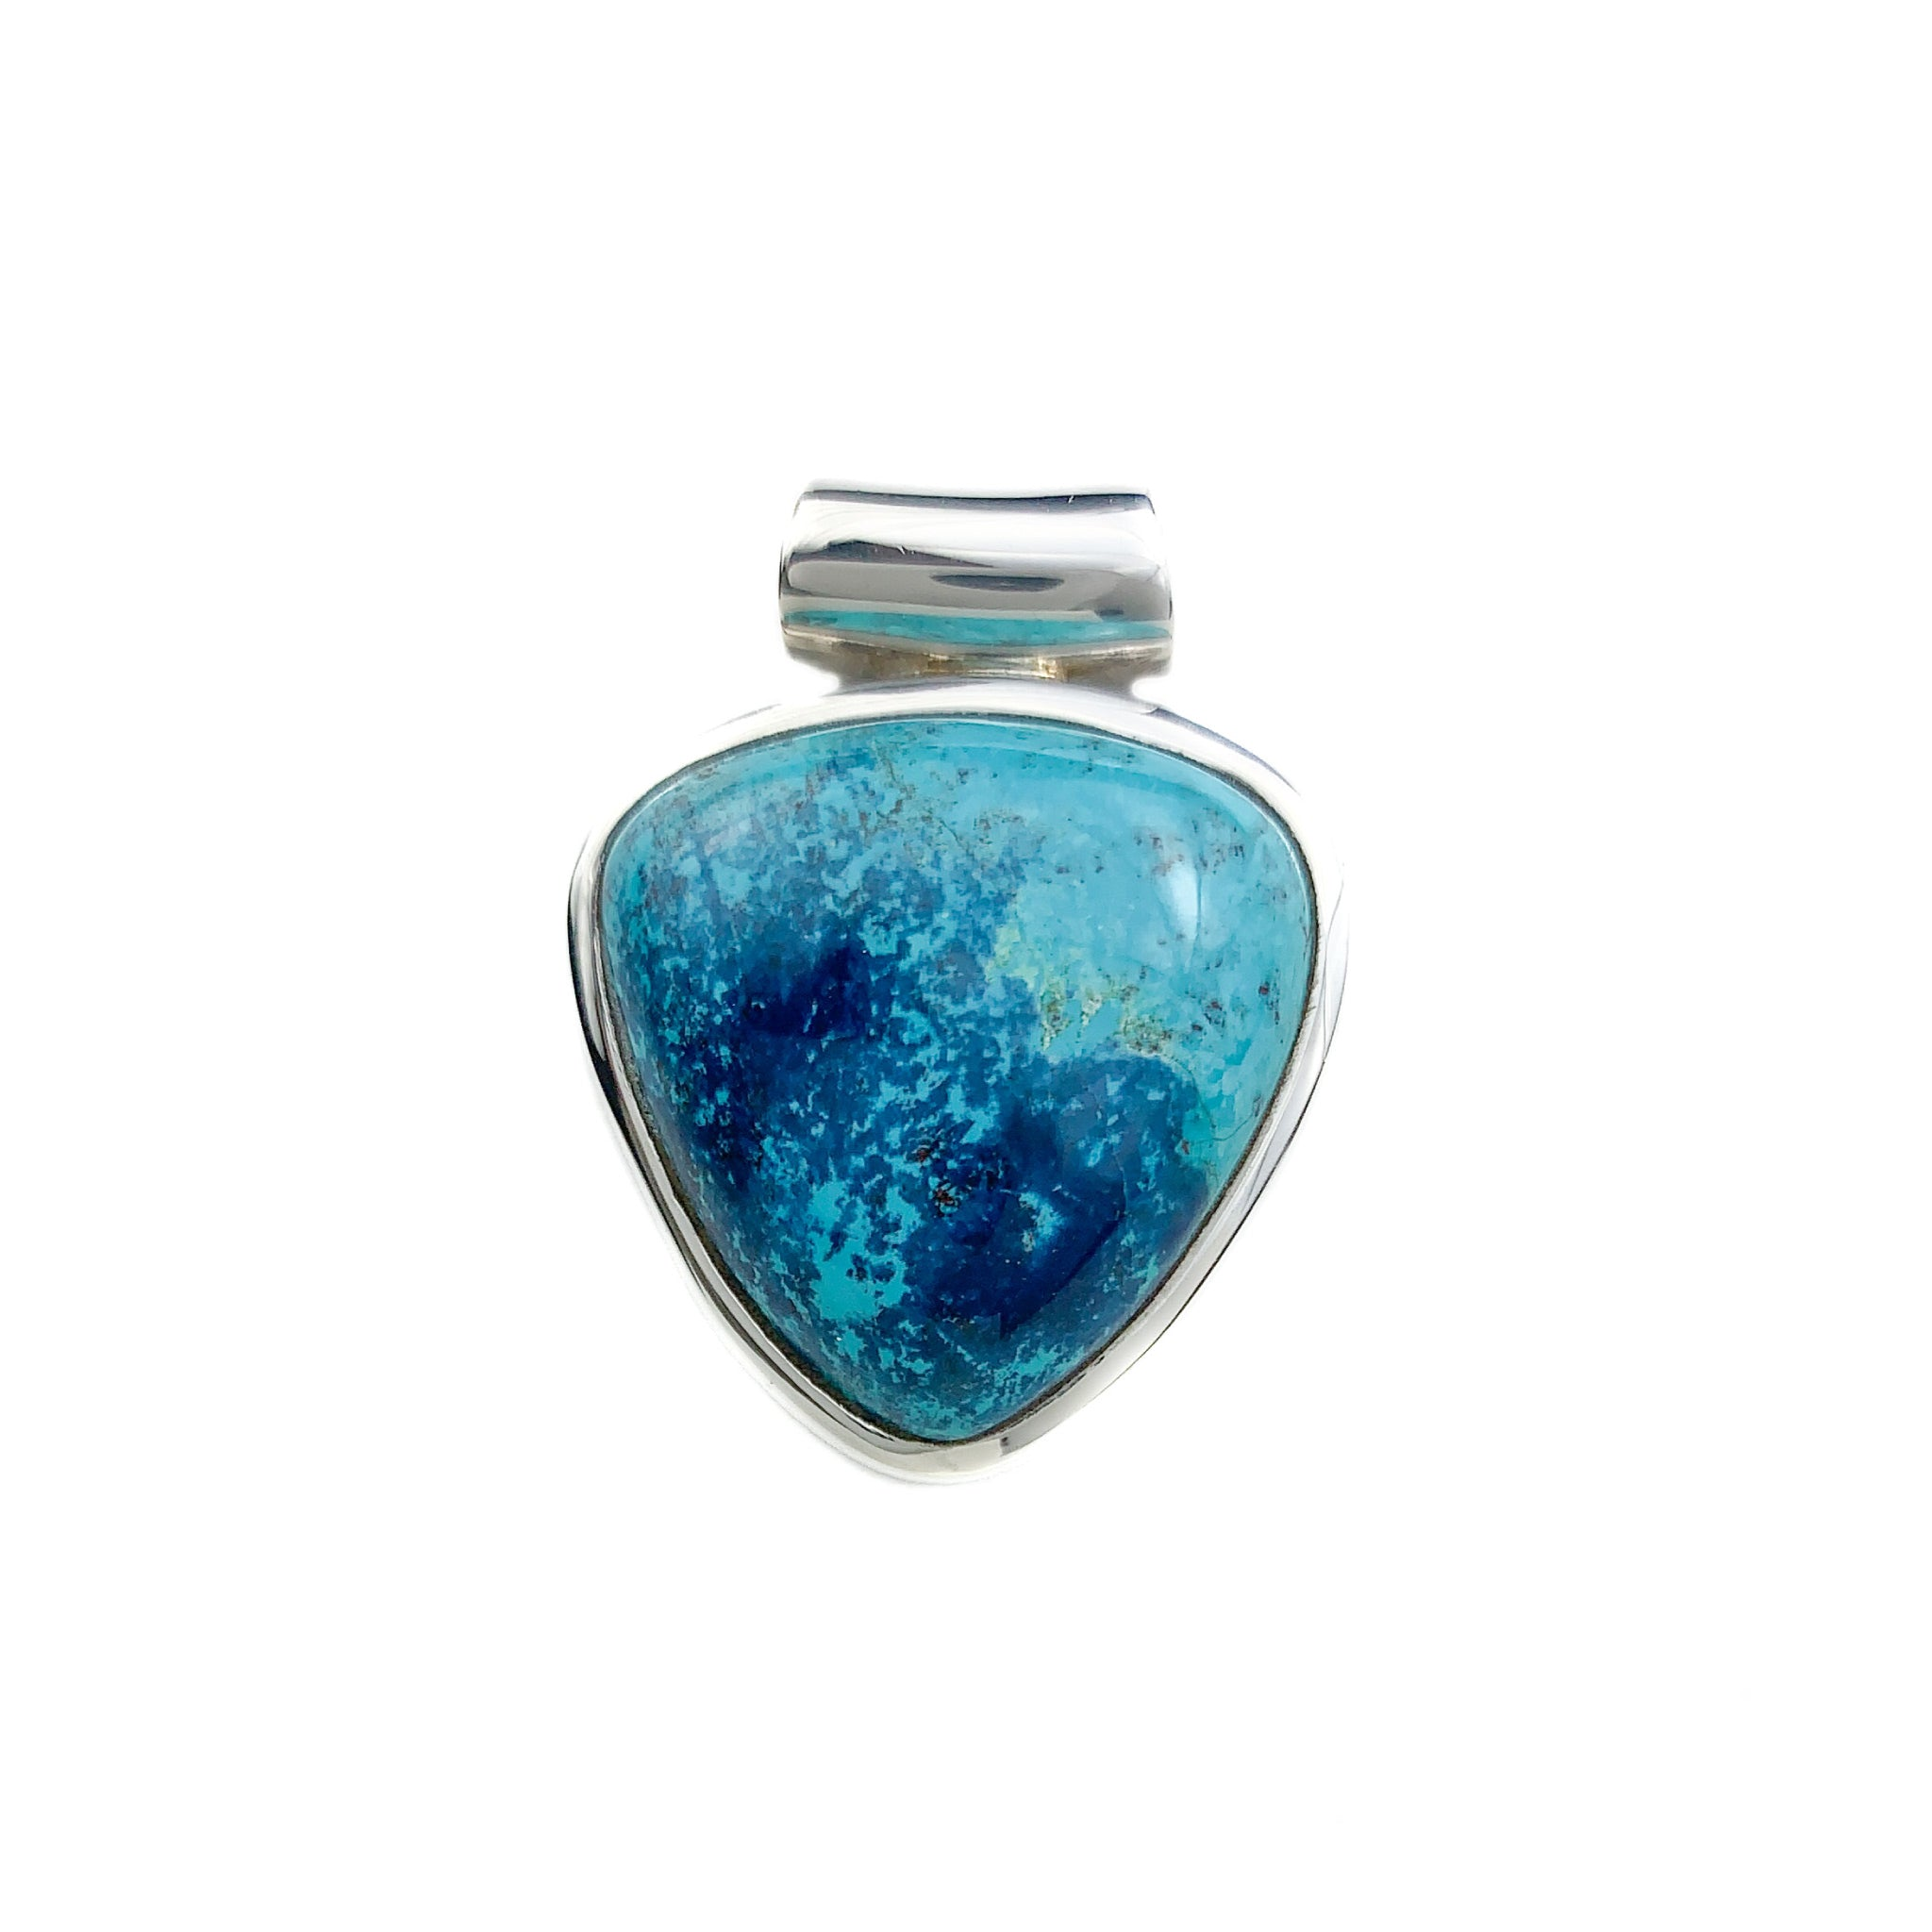 polished and fitted with Cord Shattuckite Pendant